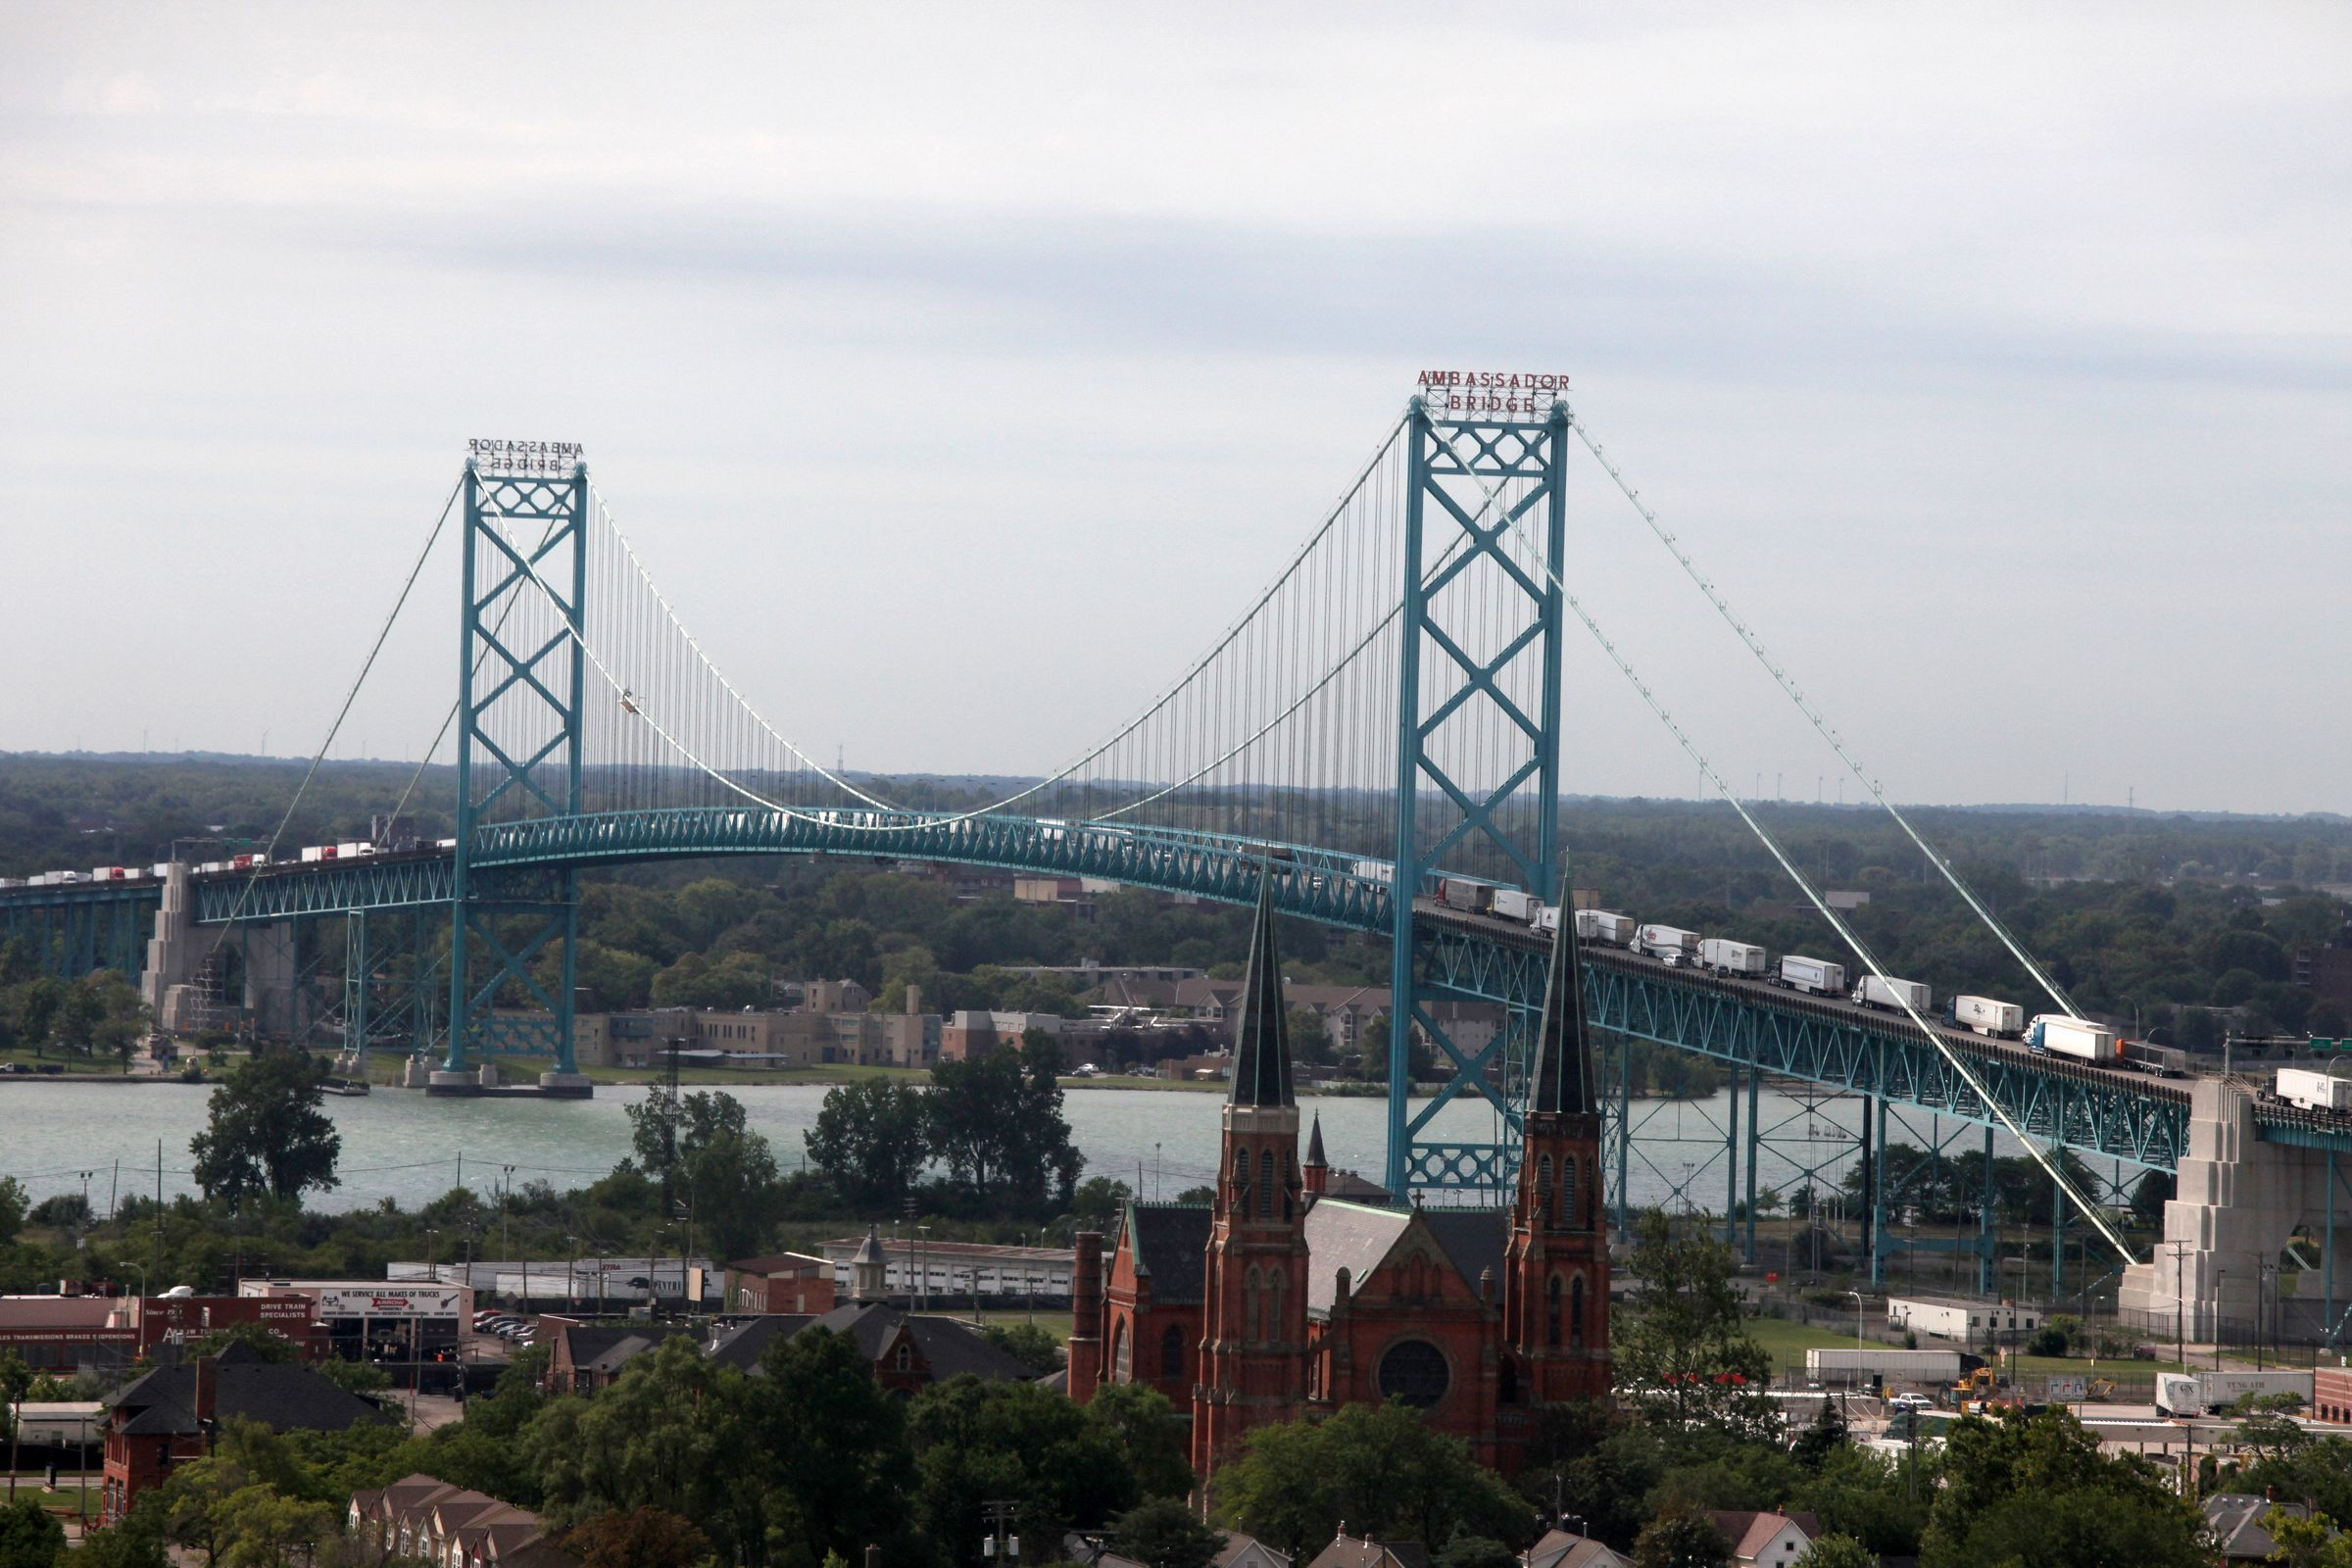 200 pounds of suspected cocaine seized at Ambassador Bridge